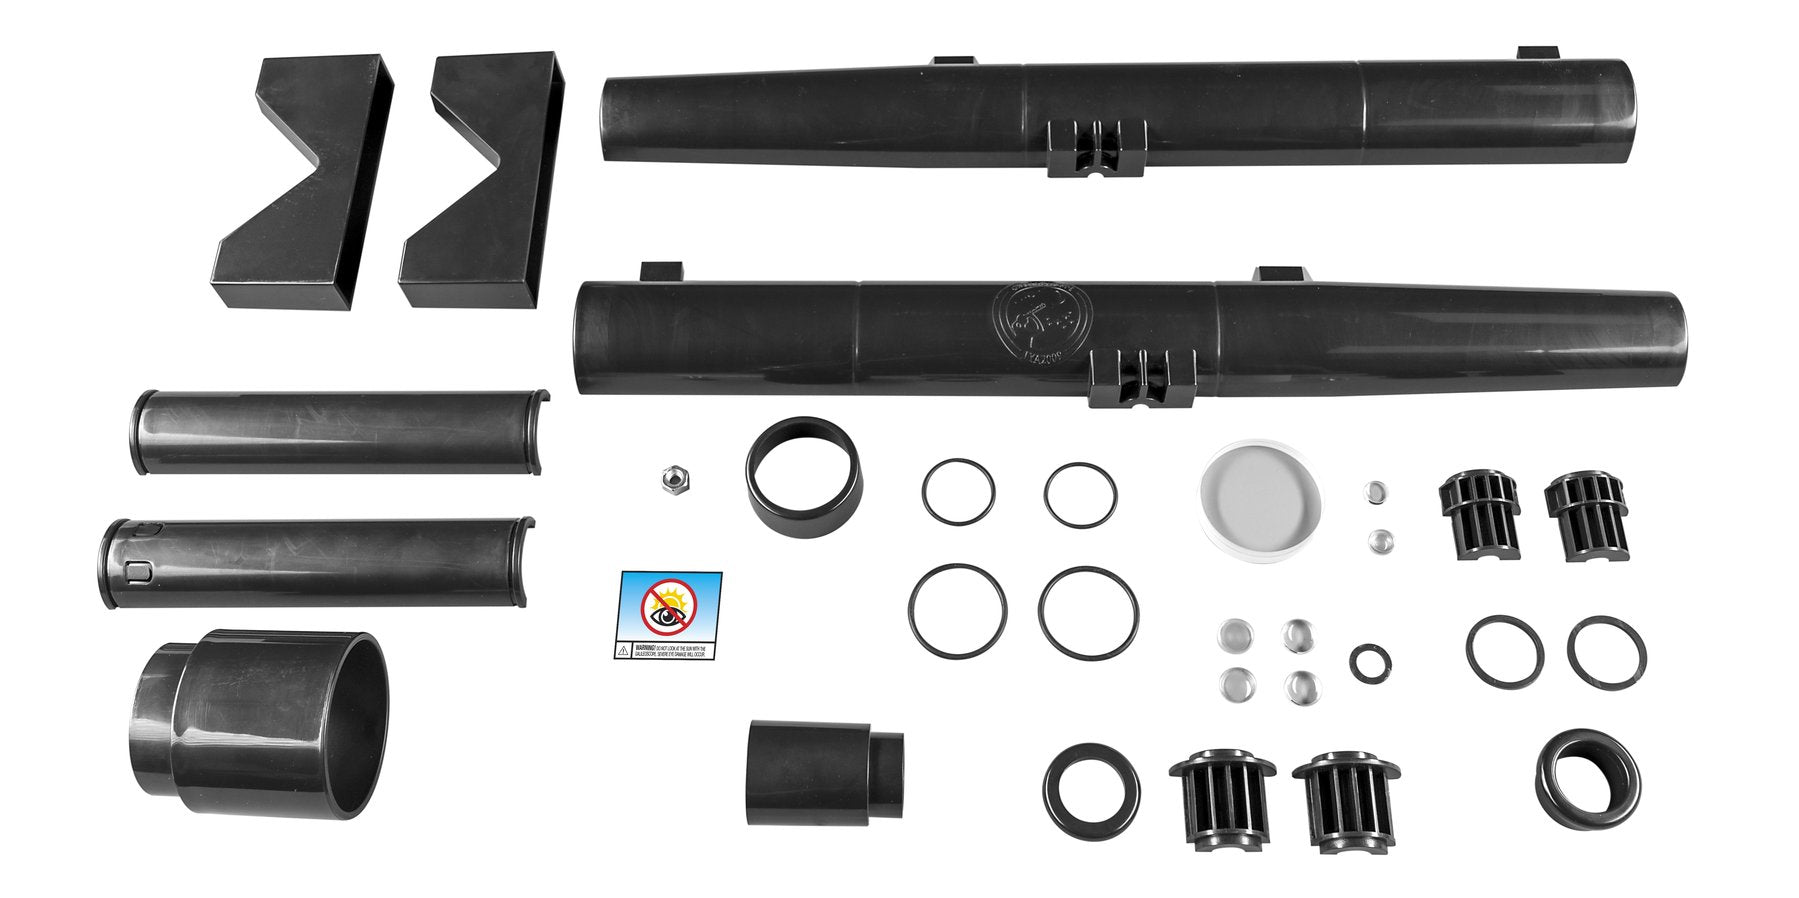 The Galileoscope Kit includes everything you need to build your own refracting telescope.